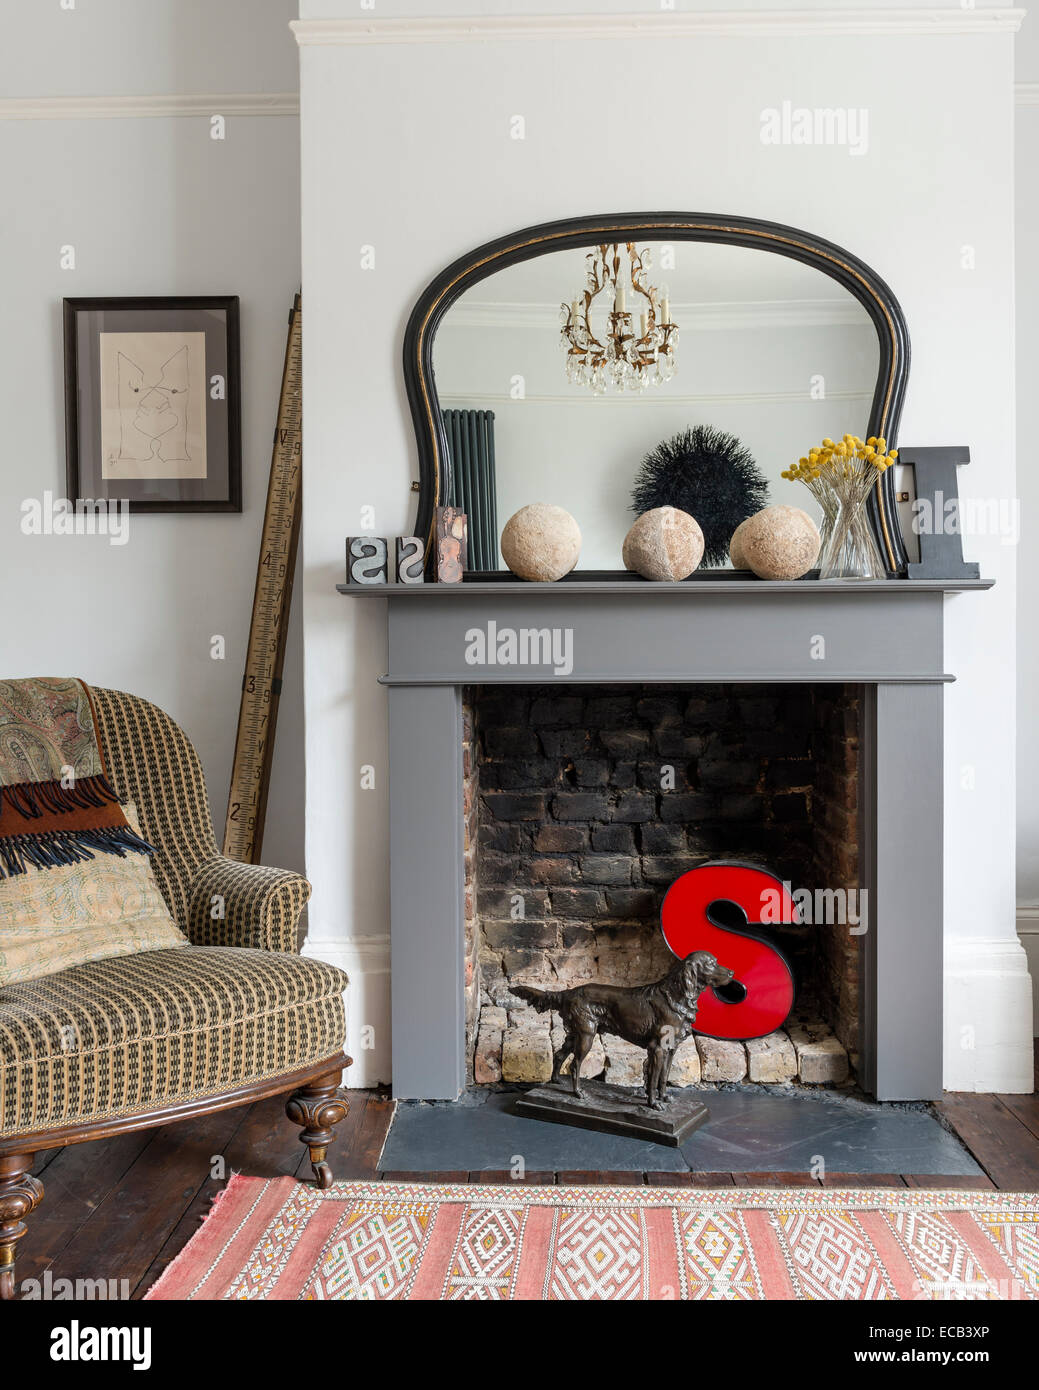 A red letter 'S' in fireplace by Victorian parlour armchair and moroccan style vintage rug - Stock Image